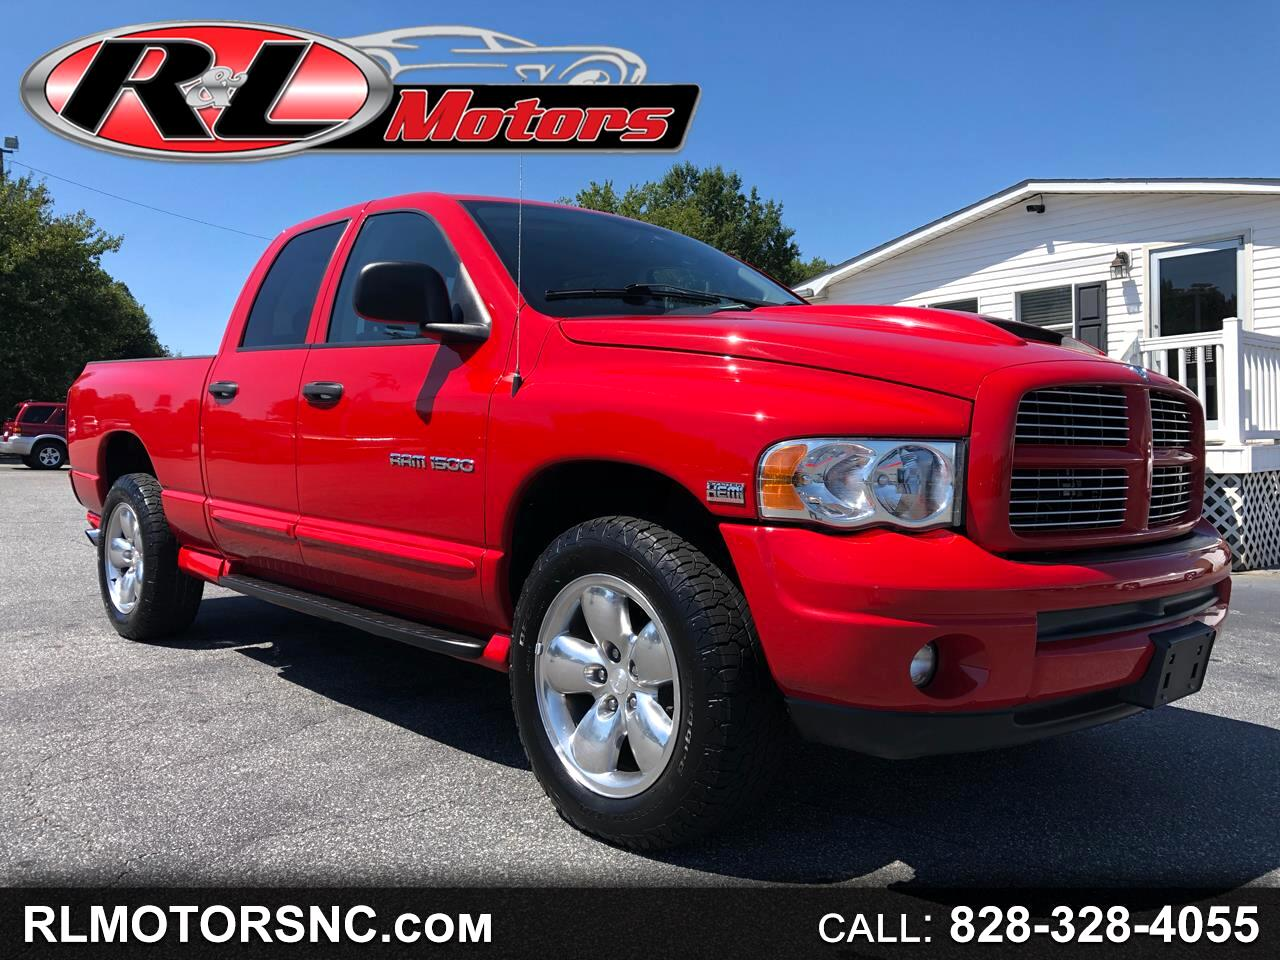 2004 Dodge Ram 1500 Laramie Quad Cab Short Bed 4WD